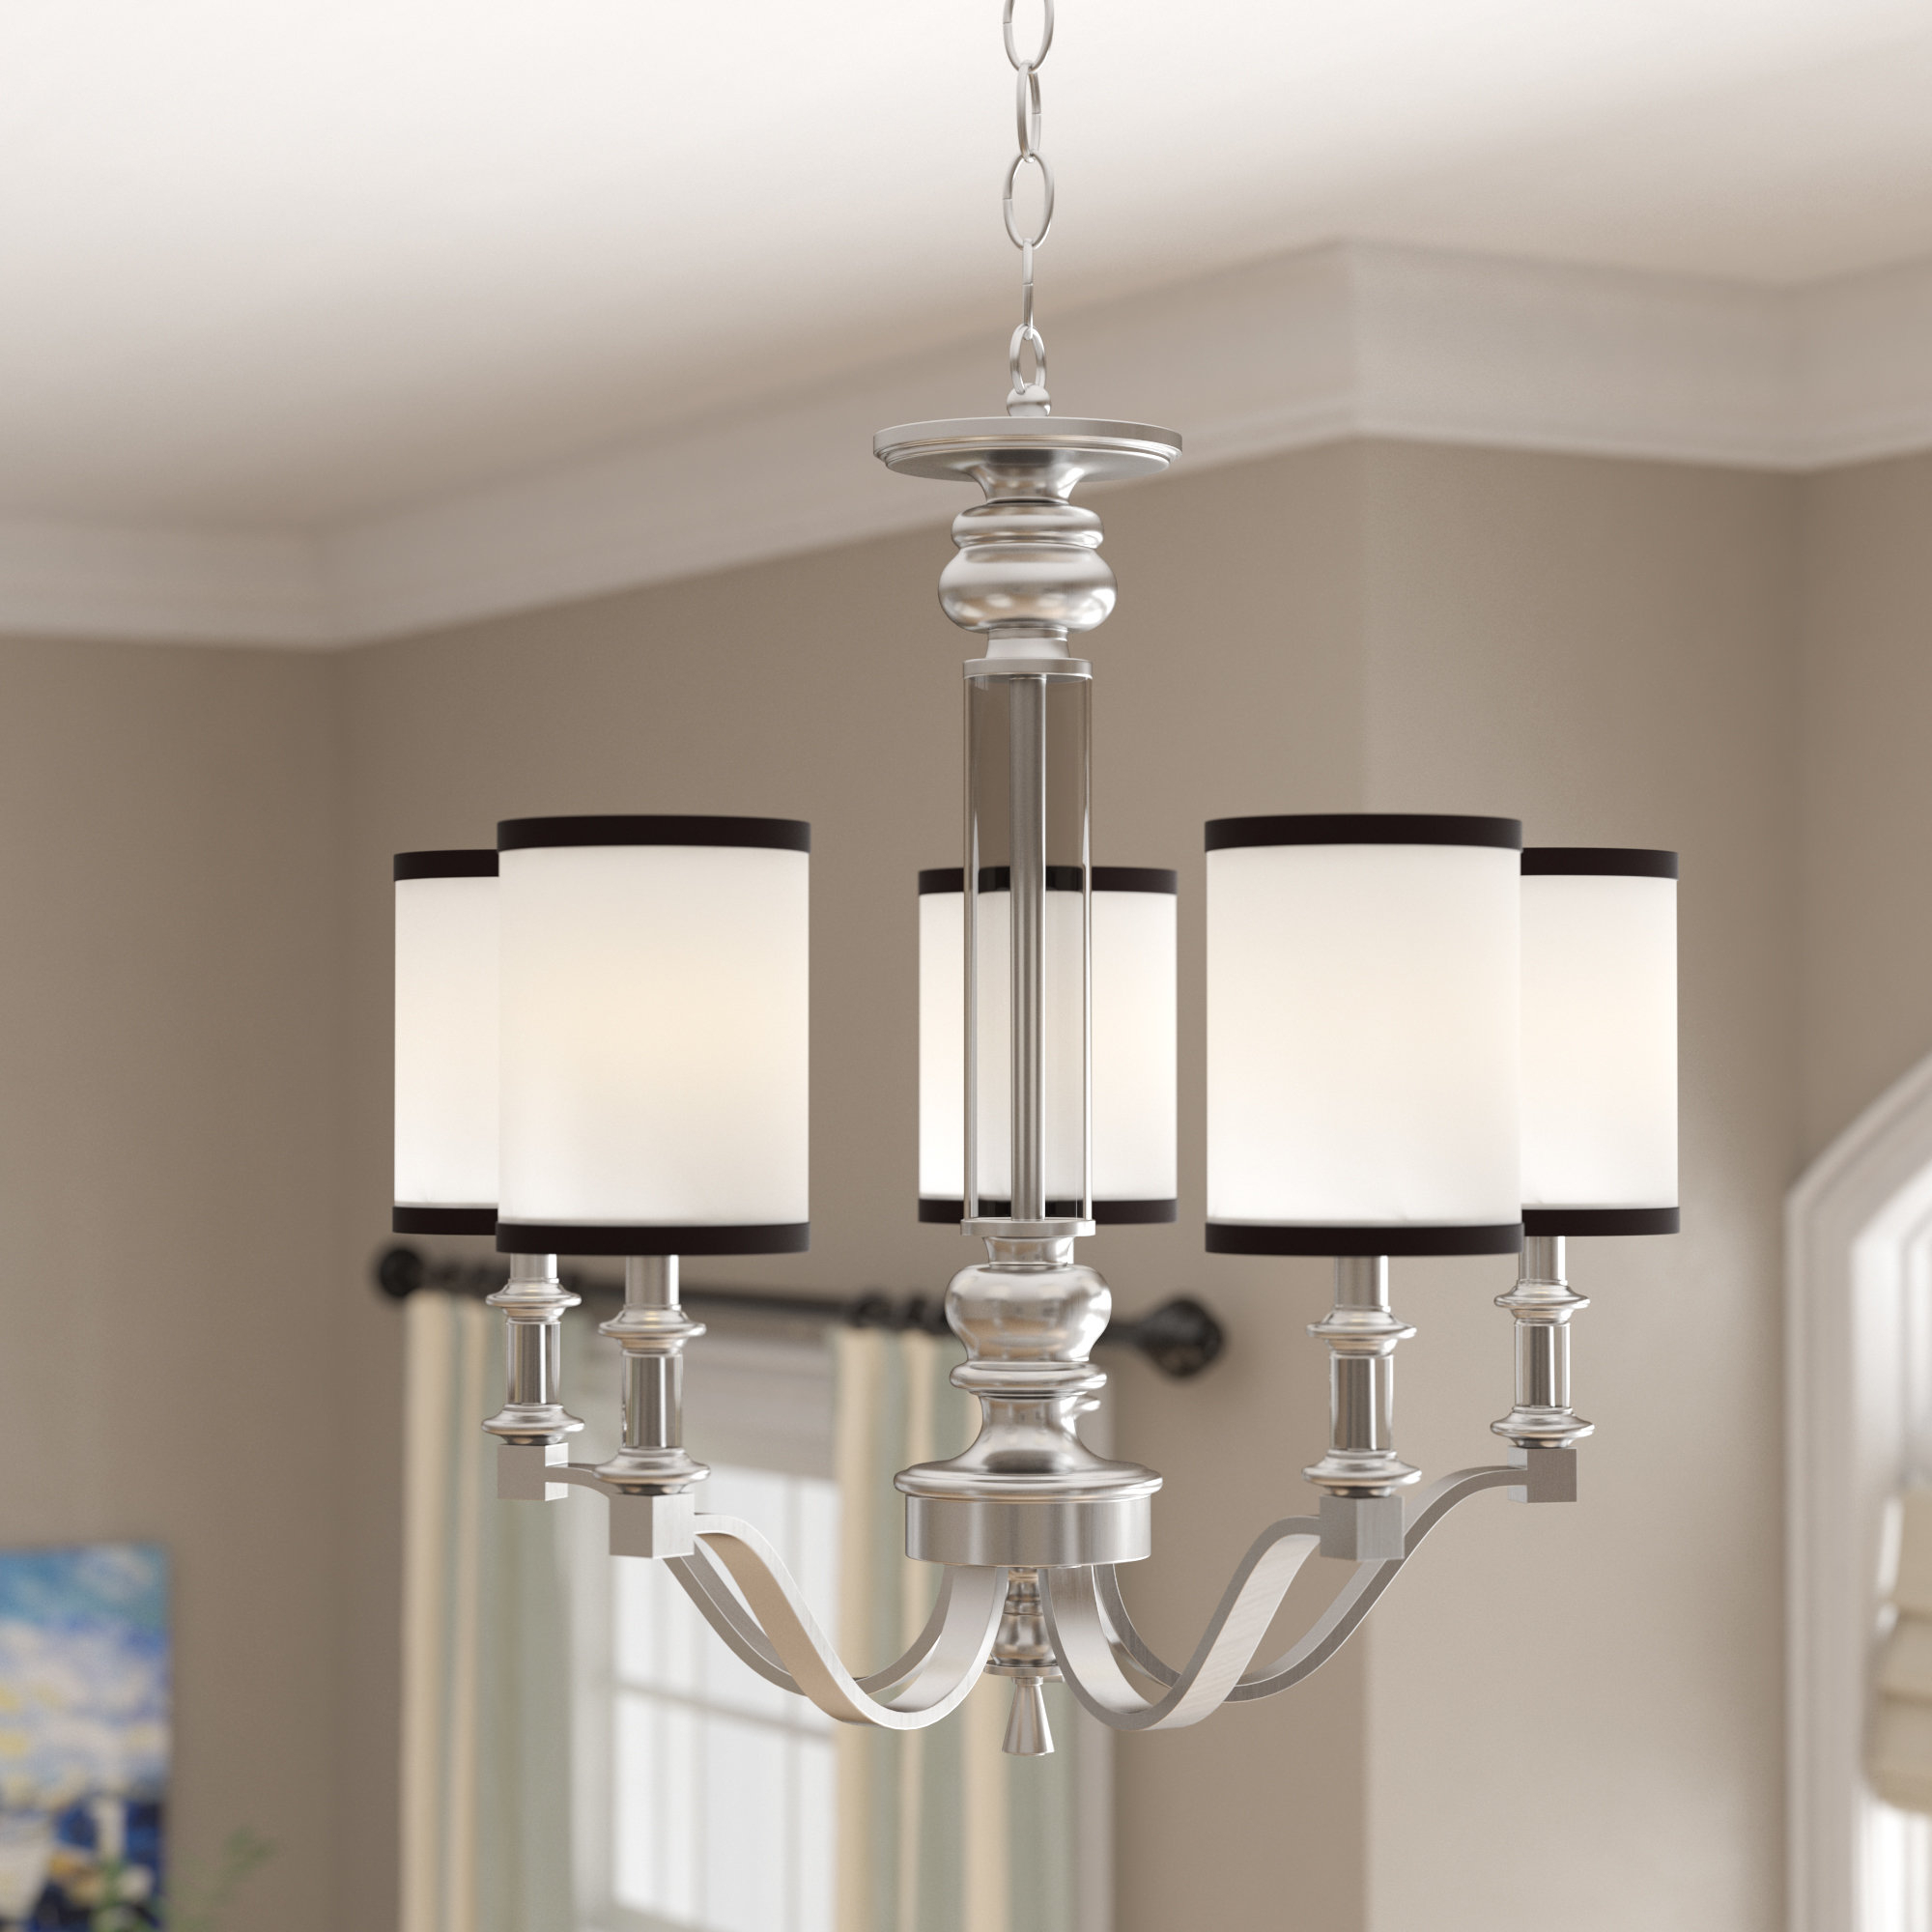 Crofoot 5 Light Shaded Chandeliers Throughout Most Up To Date Breakwater Bay Pfeffer 5 Light Shaded Chandelier & Reviews (Gallery 7 of 20)